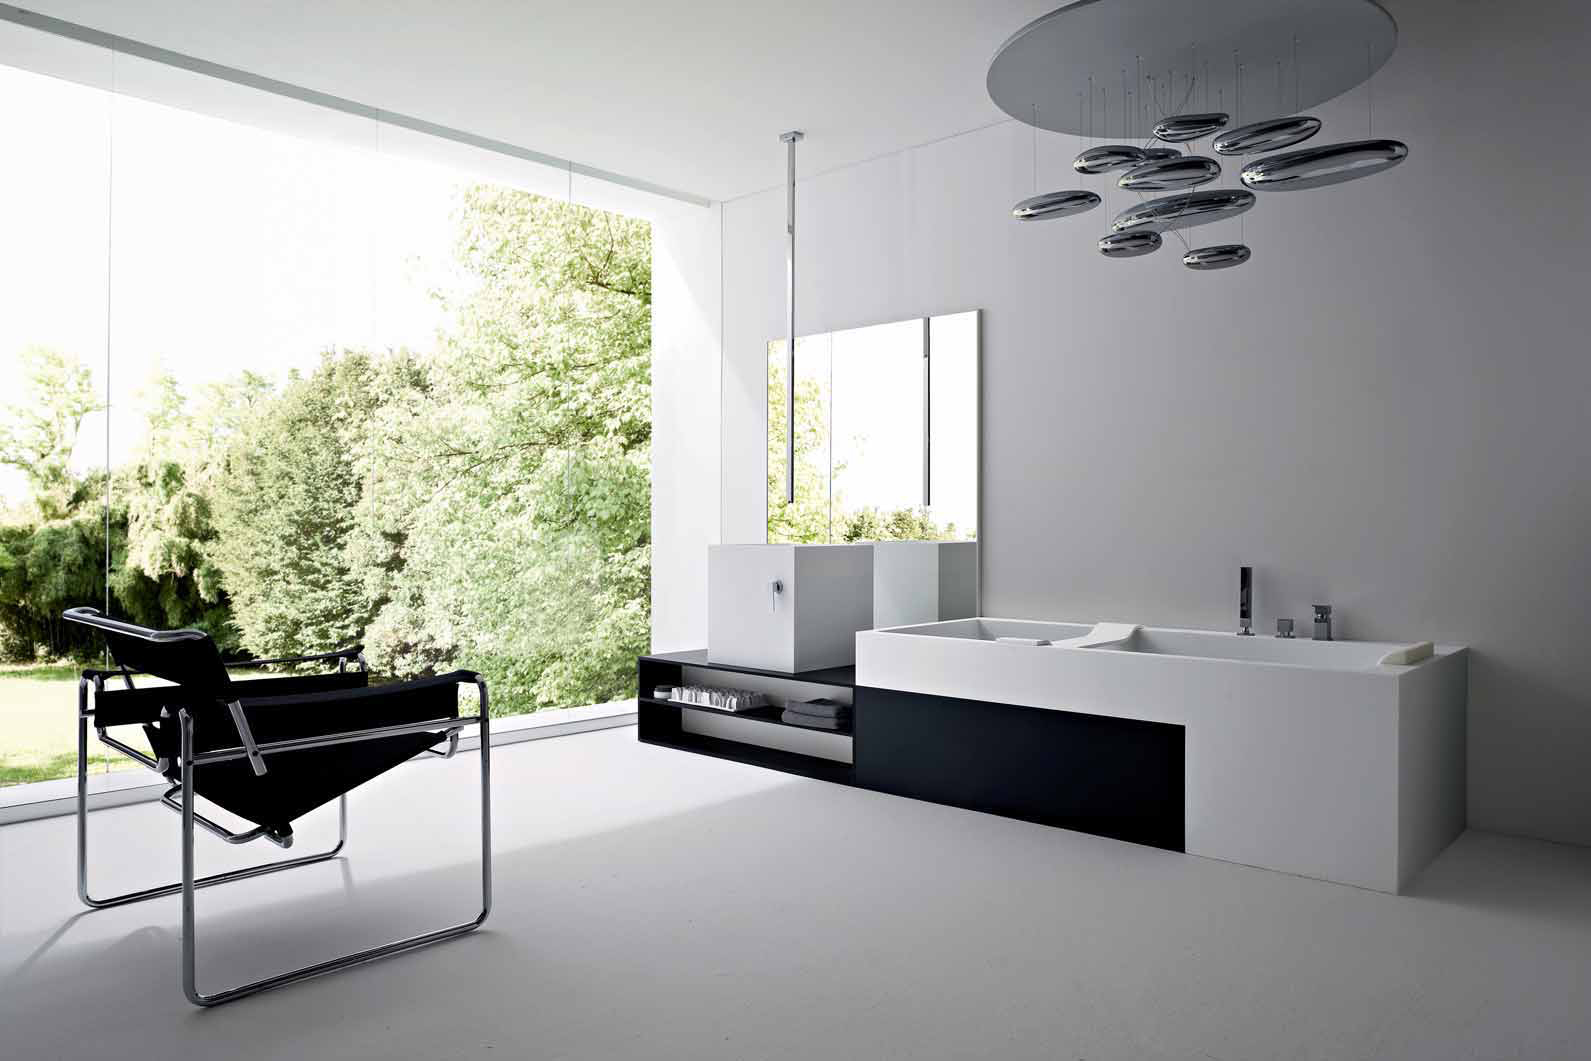 Italian bathing rooms design interior home design - Italian home interior design ...